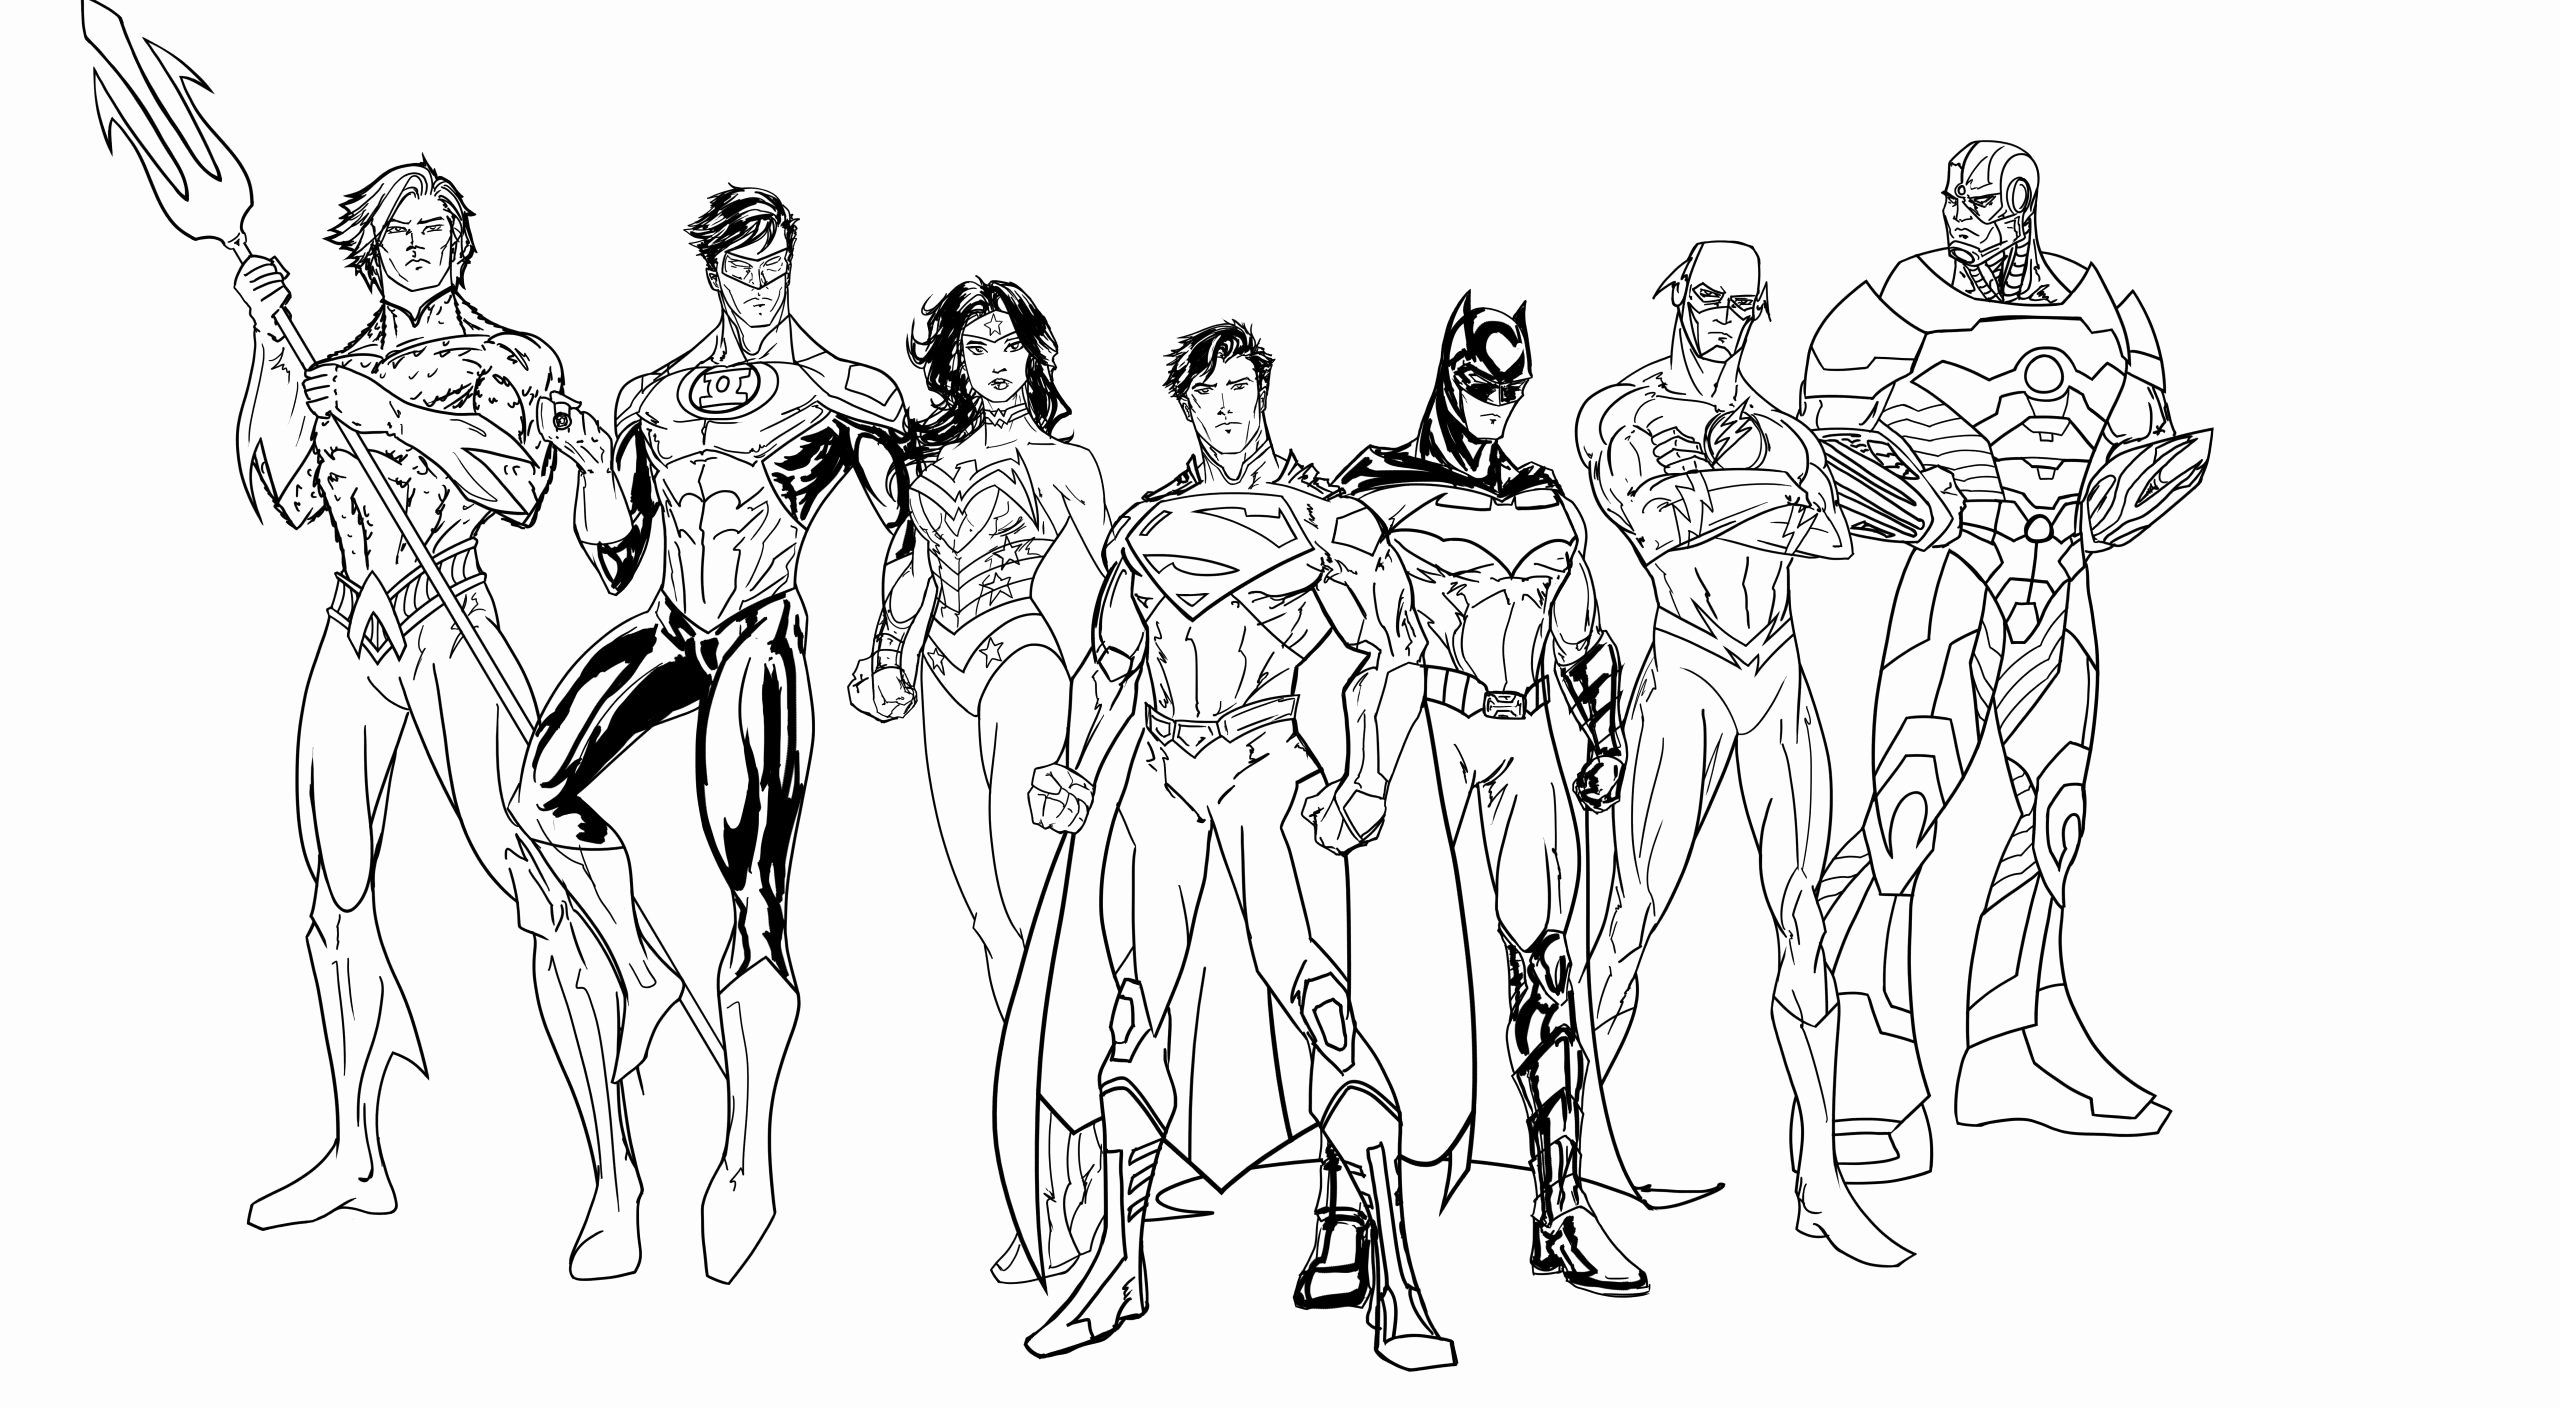 Free Spring Coloring Pages Luxury Superhero Coloring Pages Printable In 2020 Superhero Coloring Pages Superhero Coloring Marvel Coloring